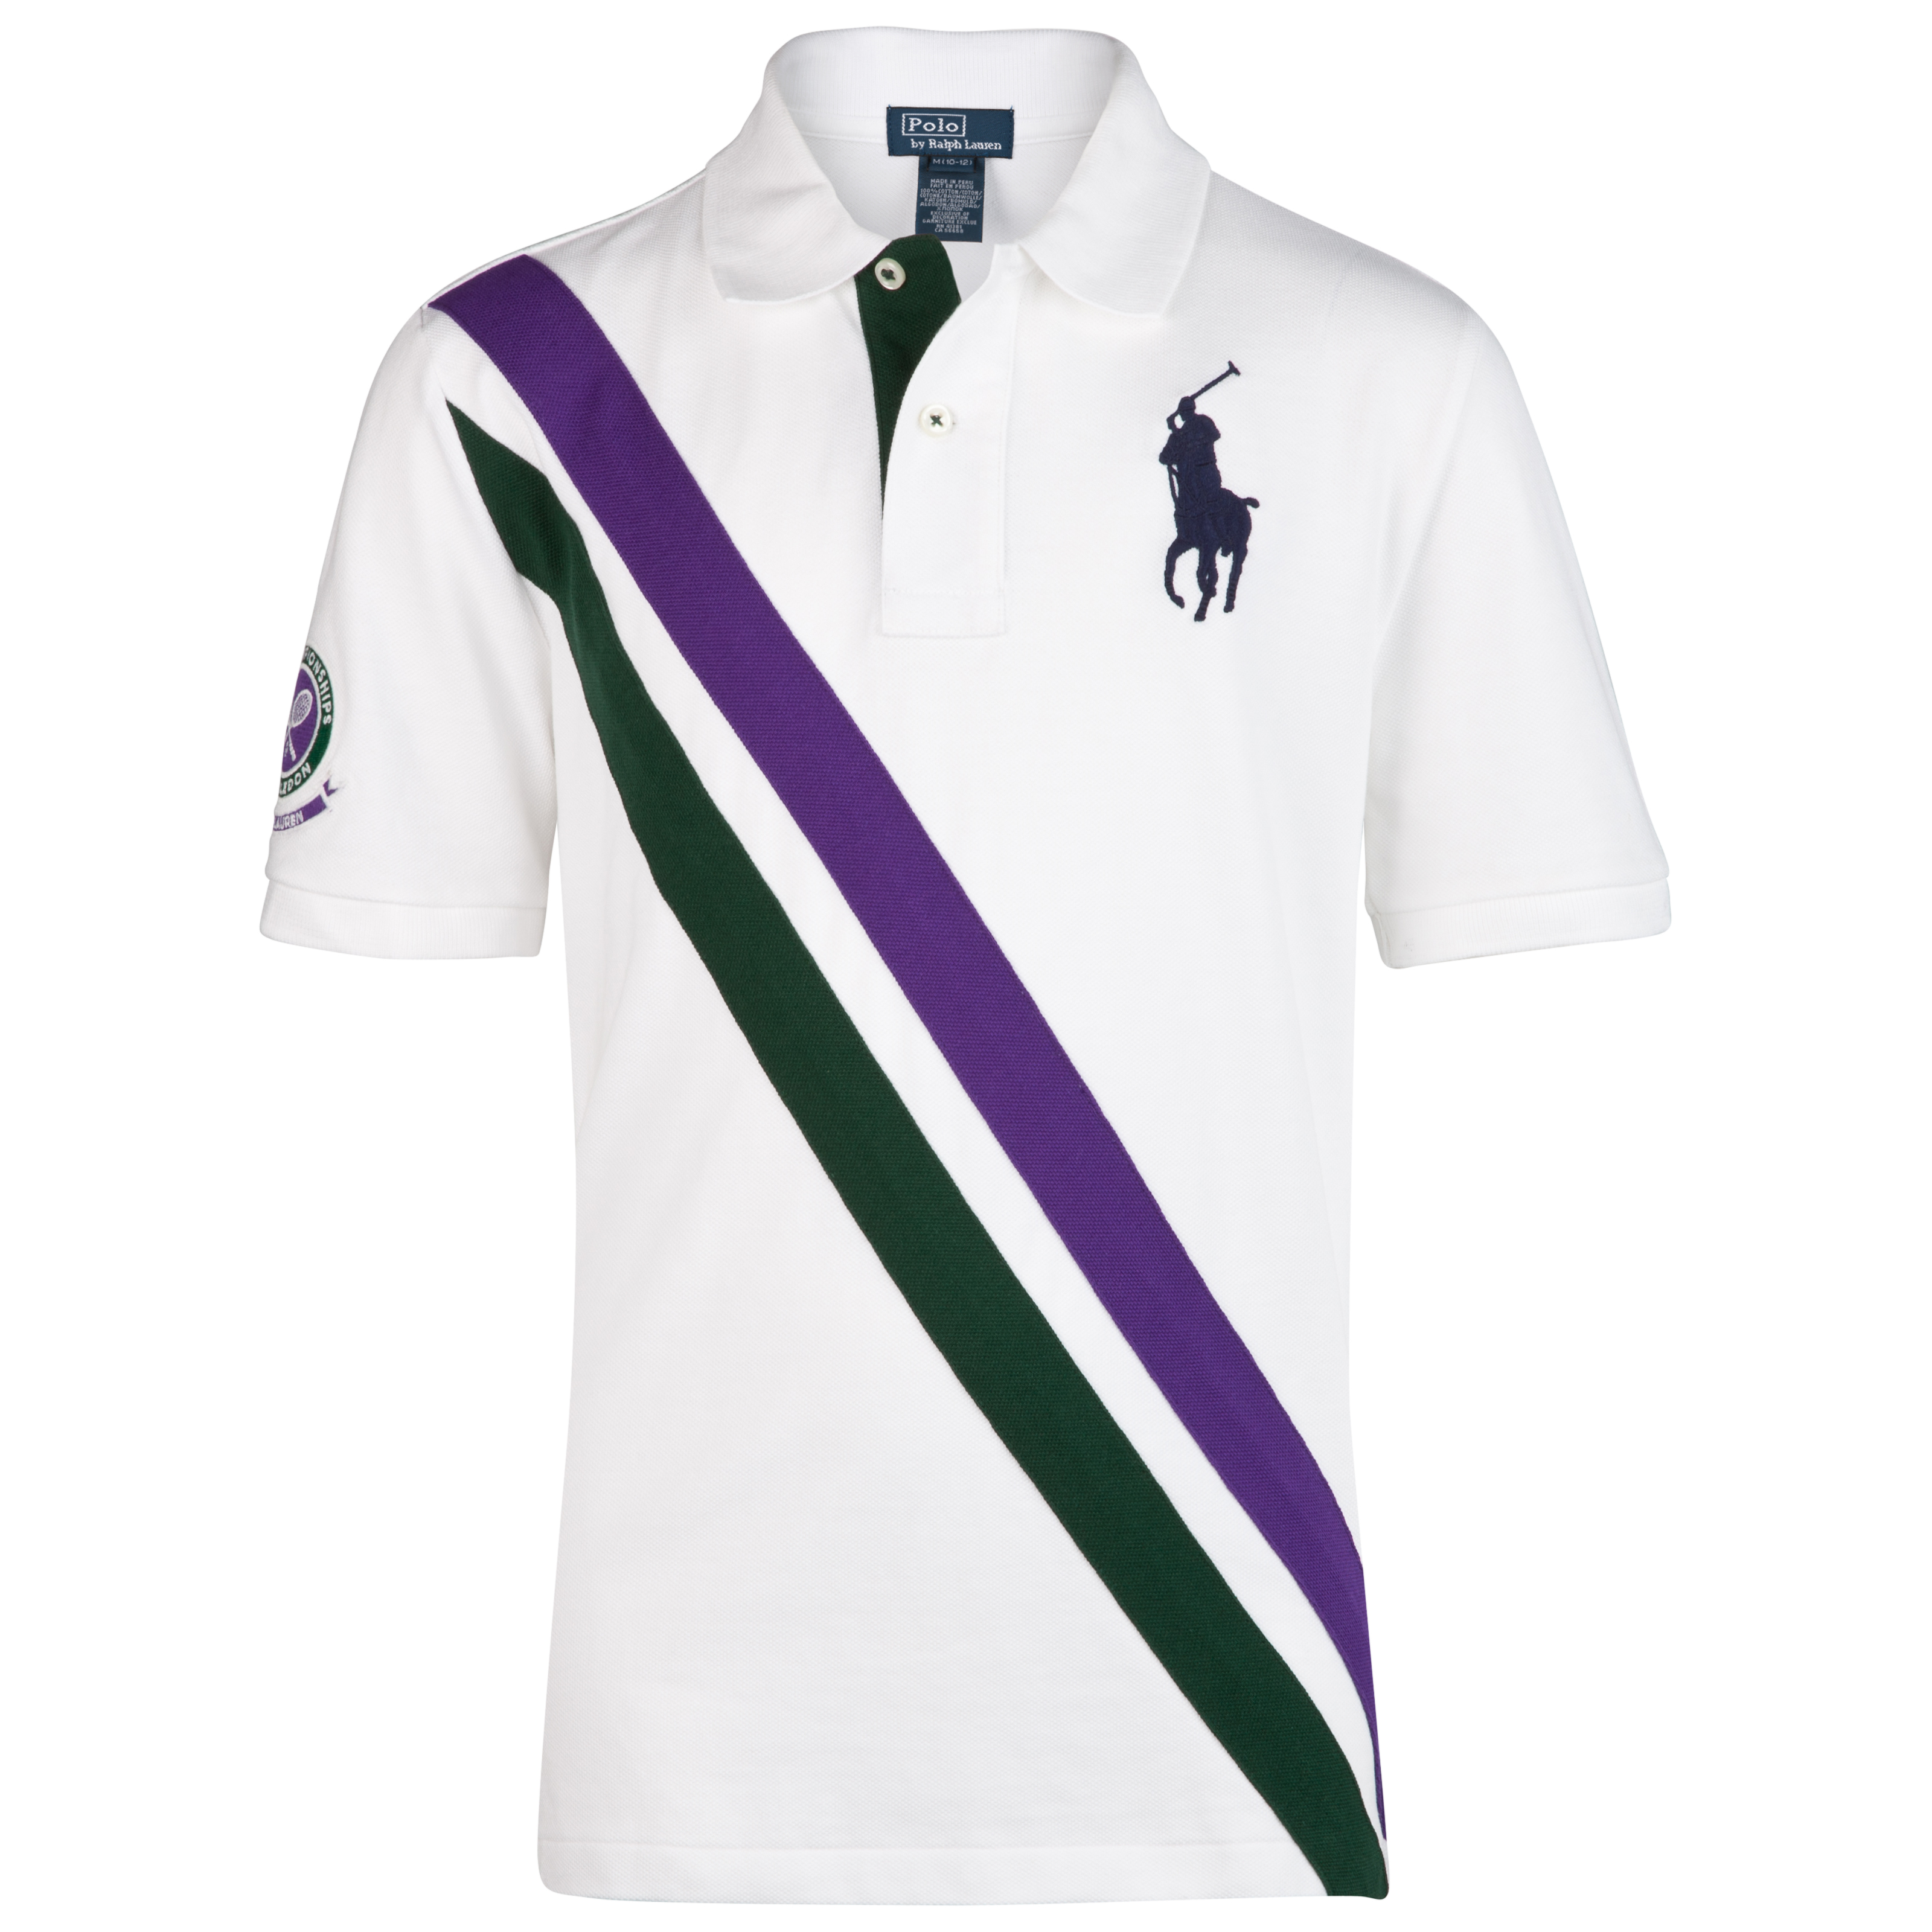 Polo Ralph Lauren Wimbledon Banner Mesh  Polo - Classic Oxford White - Older Boys